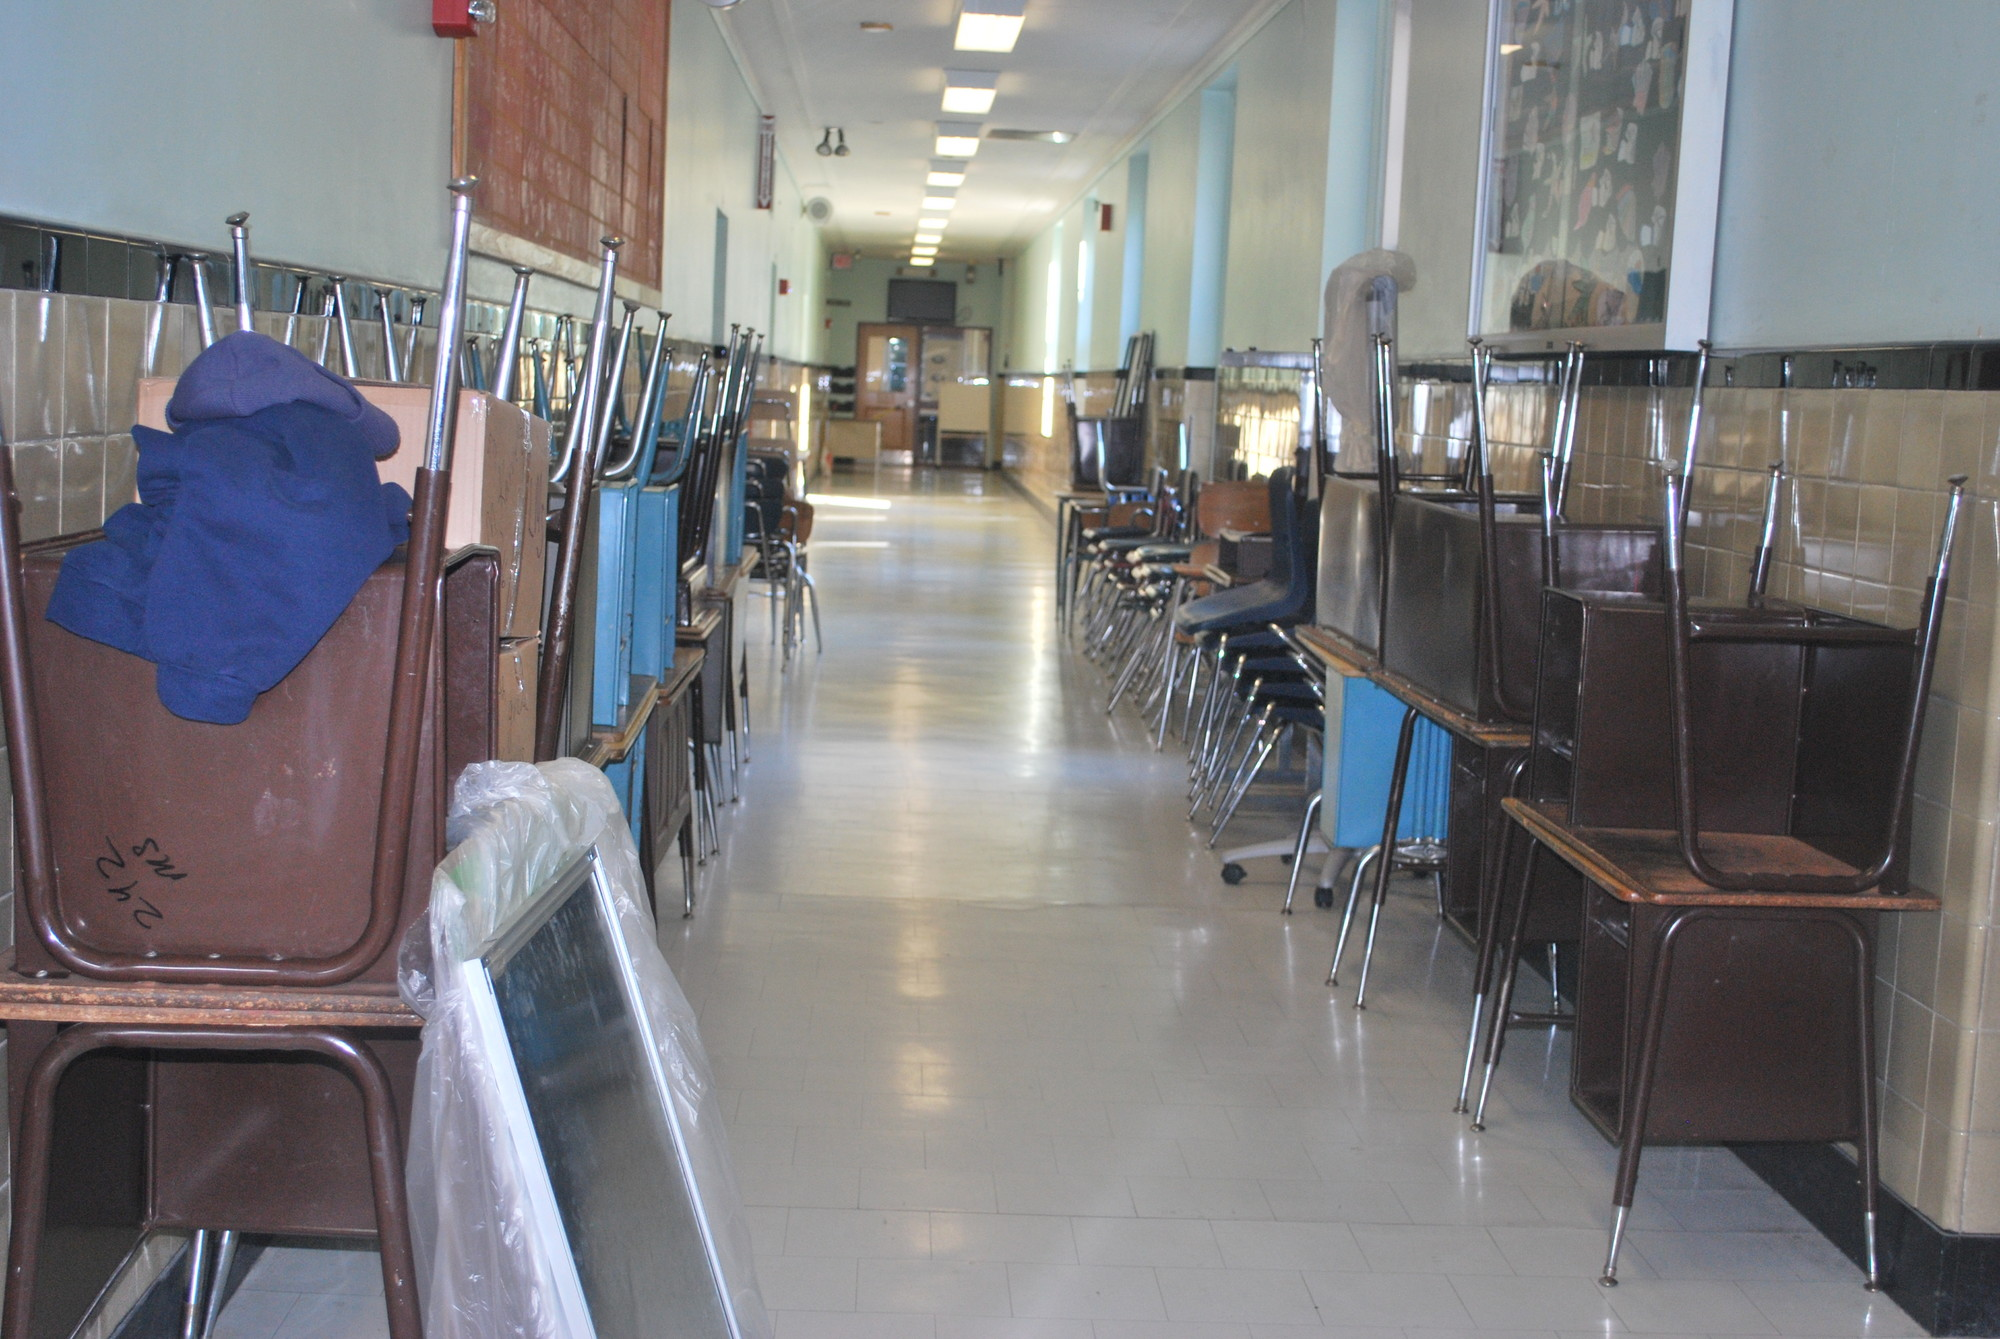 Desks and chairs lined a 